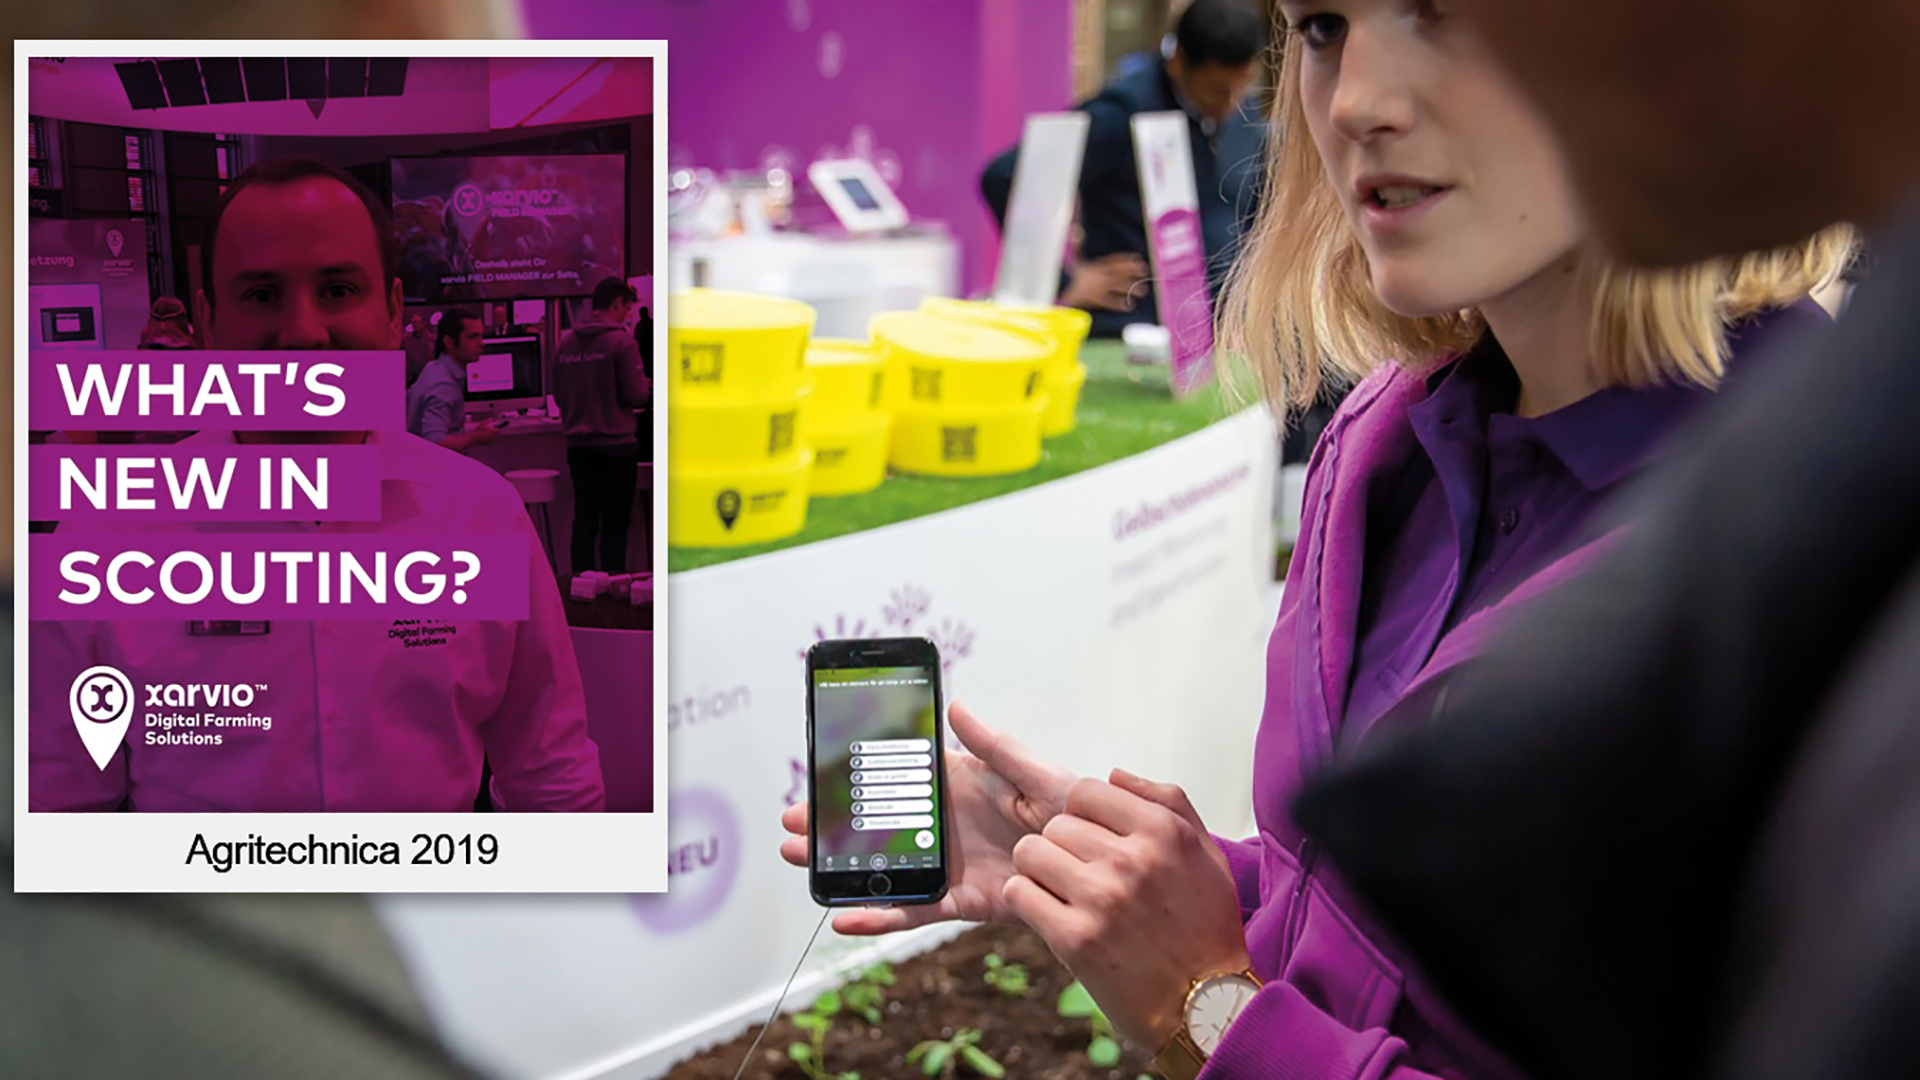 What's new in SCOUTING - Agritechnica 2019